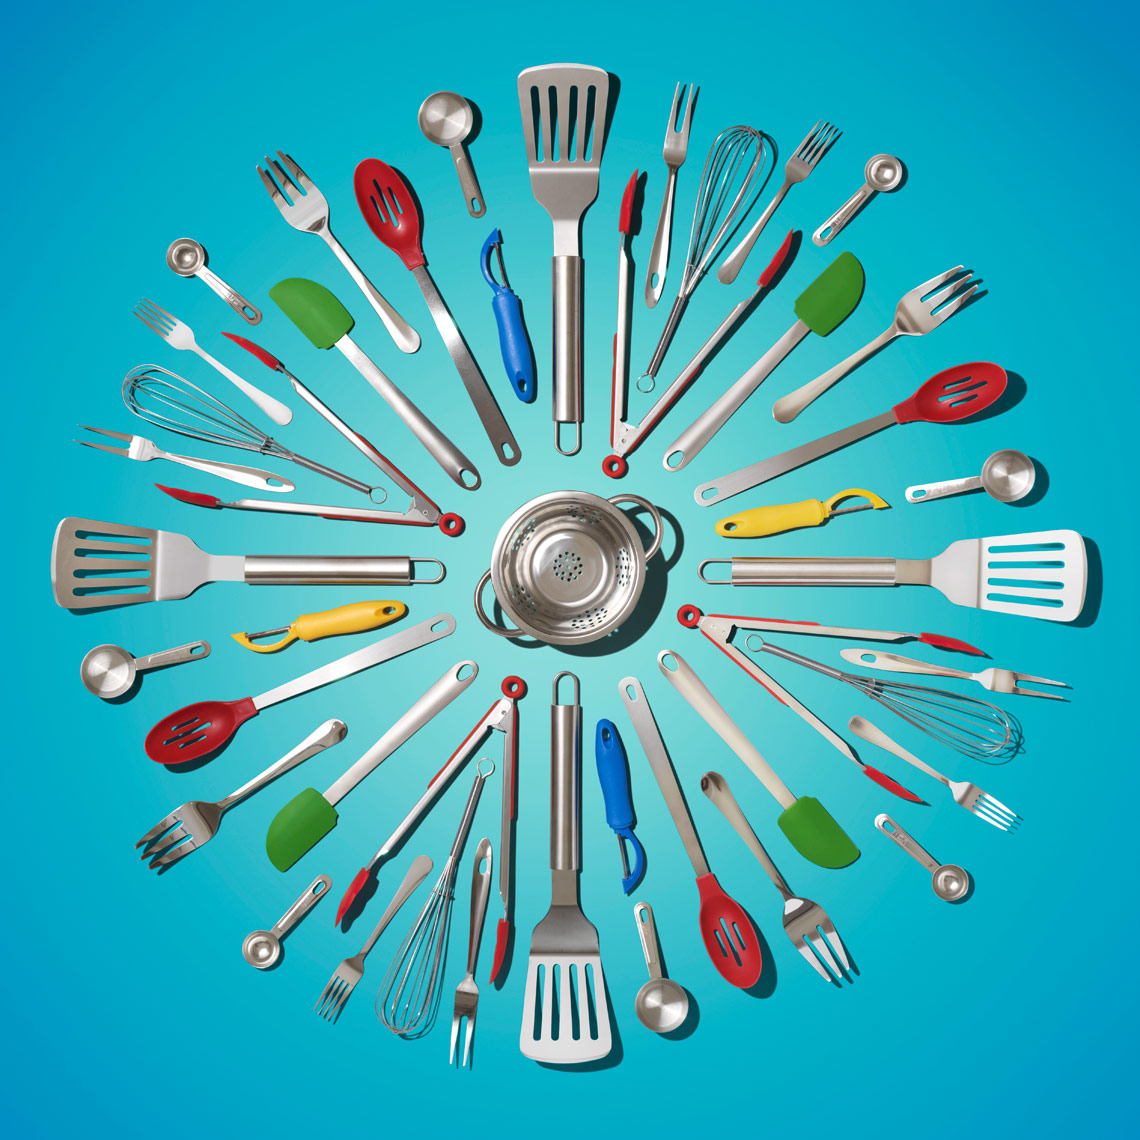 cooking utensils arranged in a mandala